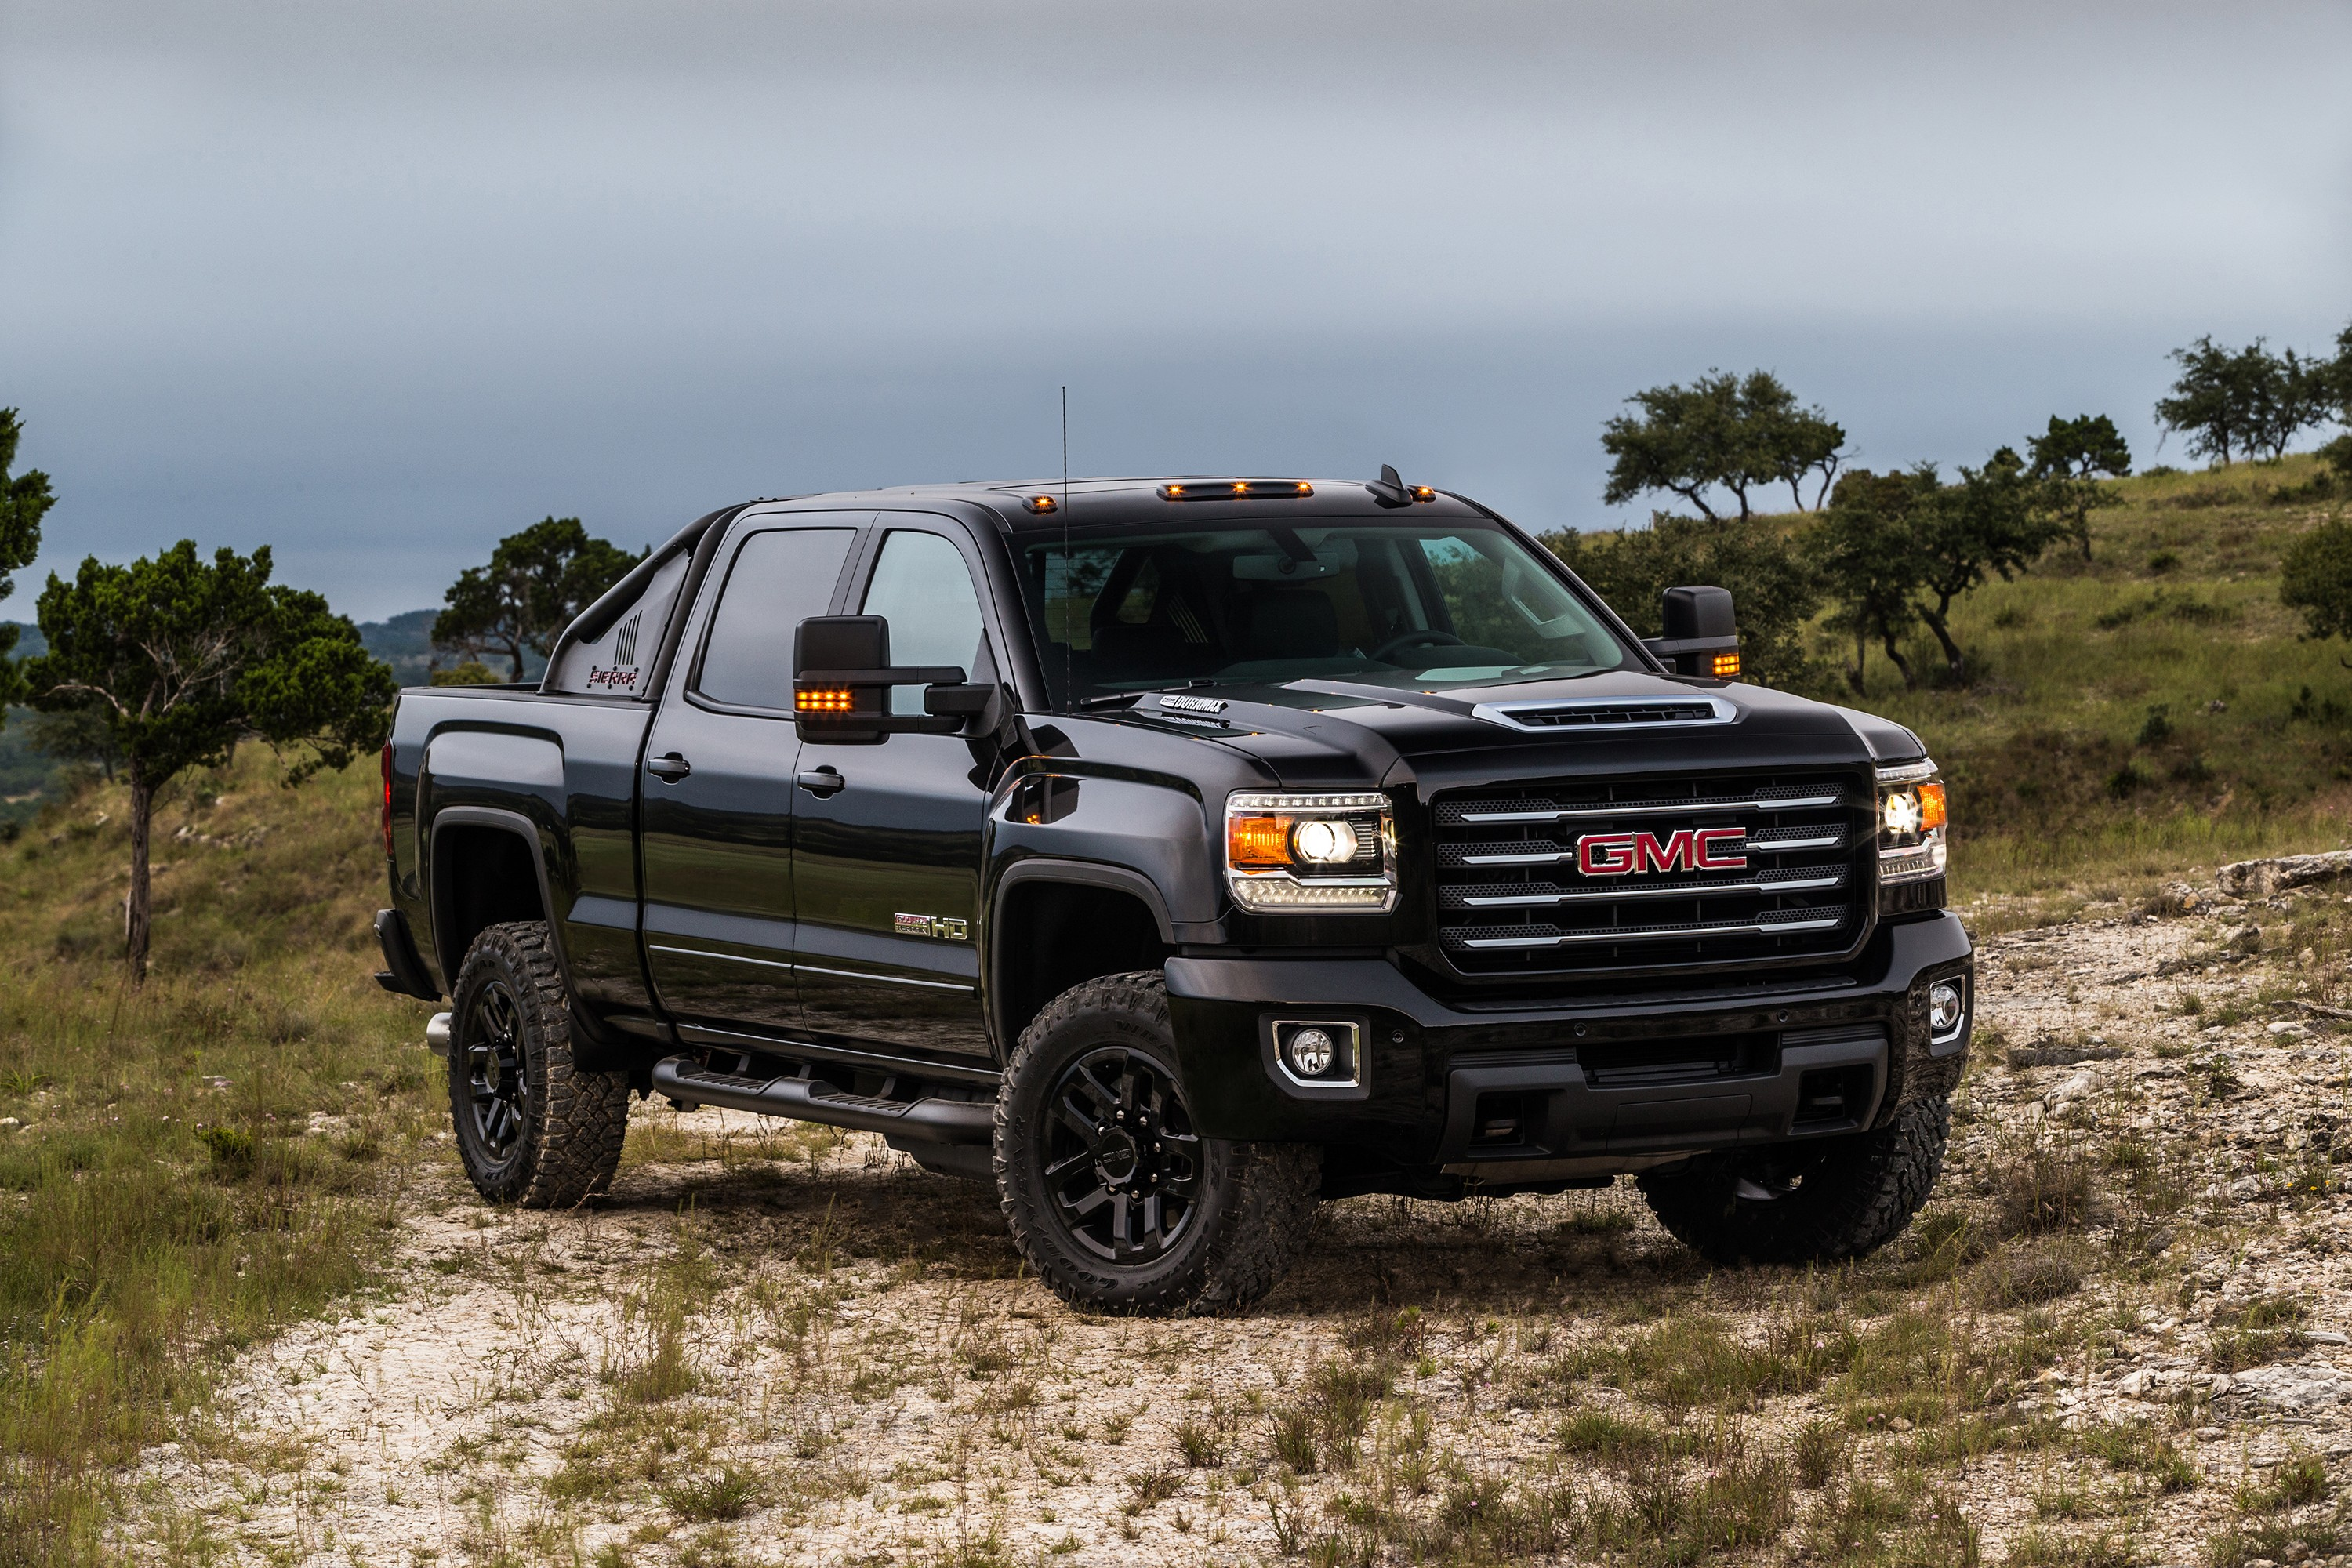 Van Buren Gmc >> 2017 GMC Sierra 2500HD All Terrain X Reporting For Off-Road Duty - autoevolution